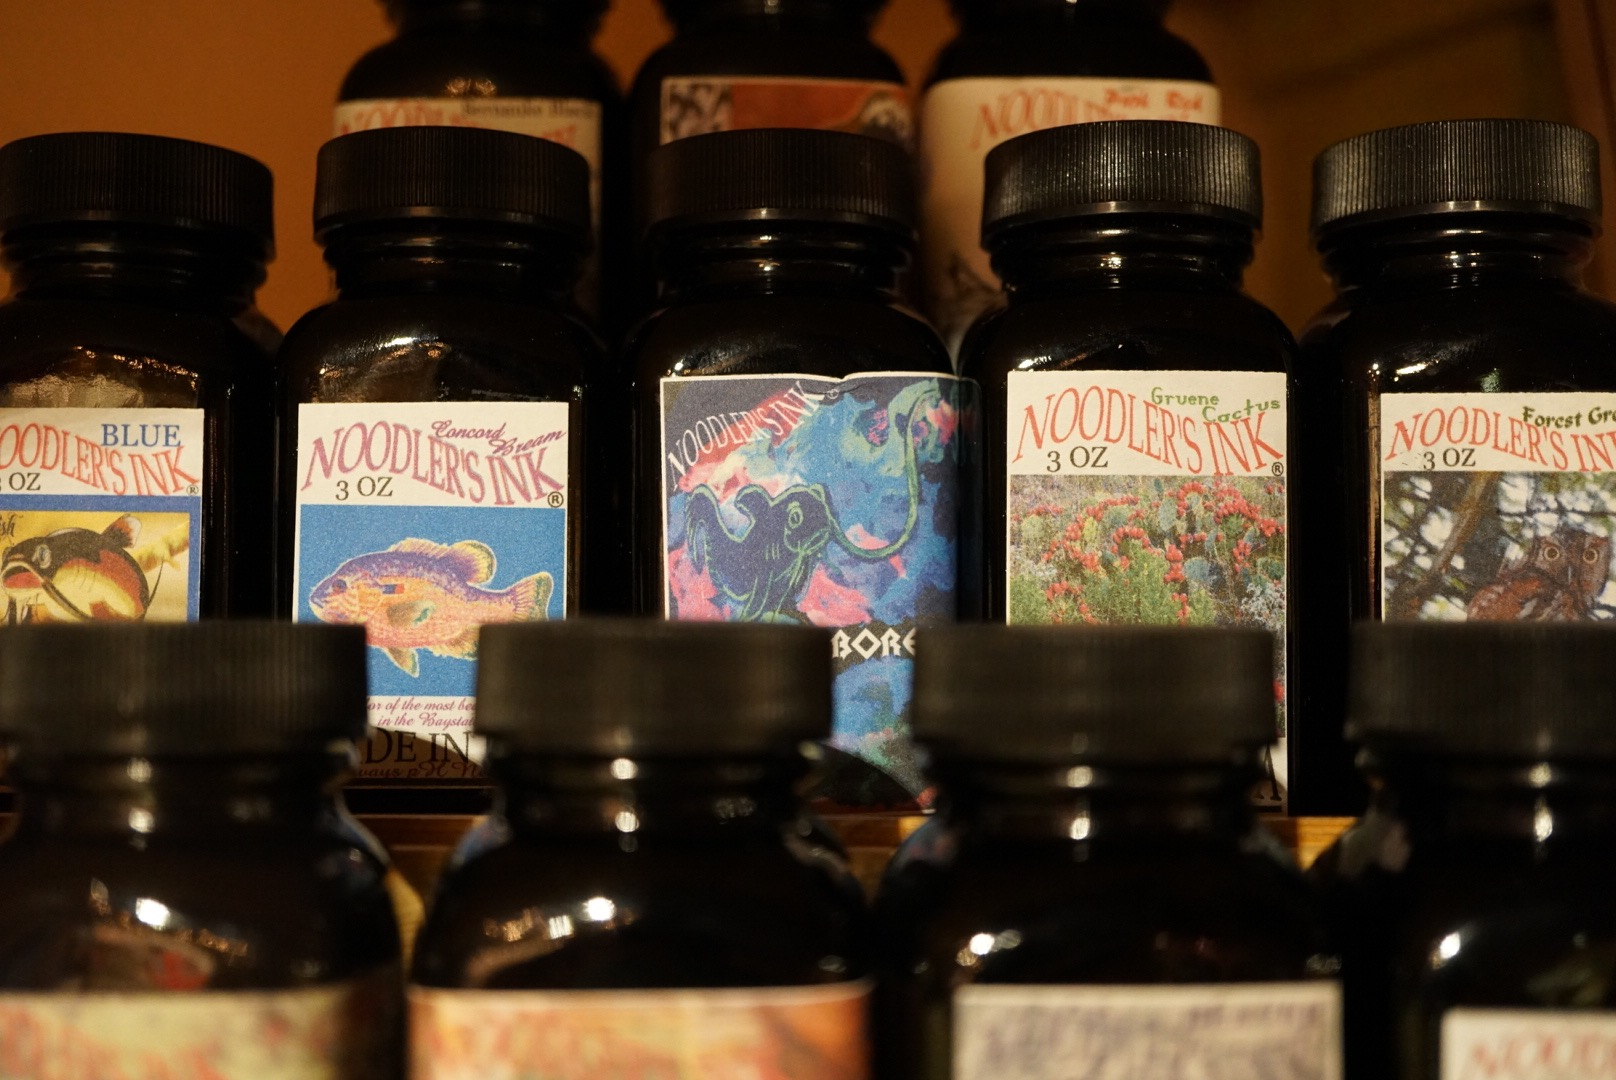 Generous bottles of lovely inks and really fun artwork!